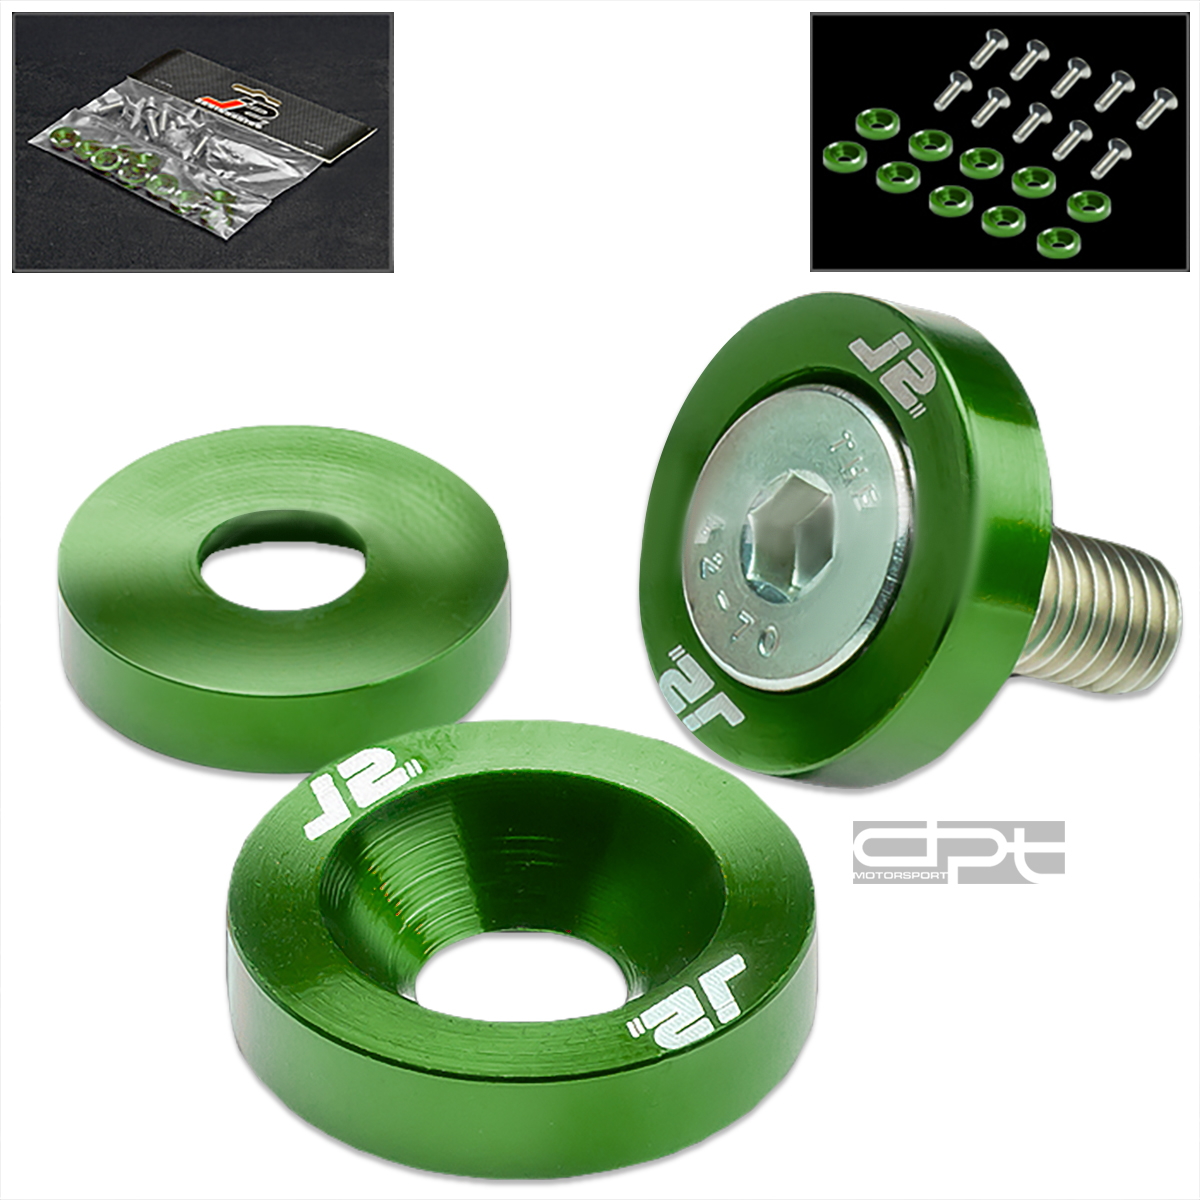 J2 JDM M6 X1 ENGINE BAY/FENDER/BUMPER/BODY METRIC CUP WASHER+BOLT/NUT KIT GREEN